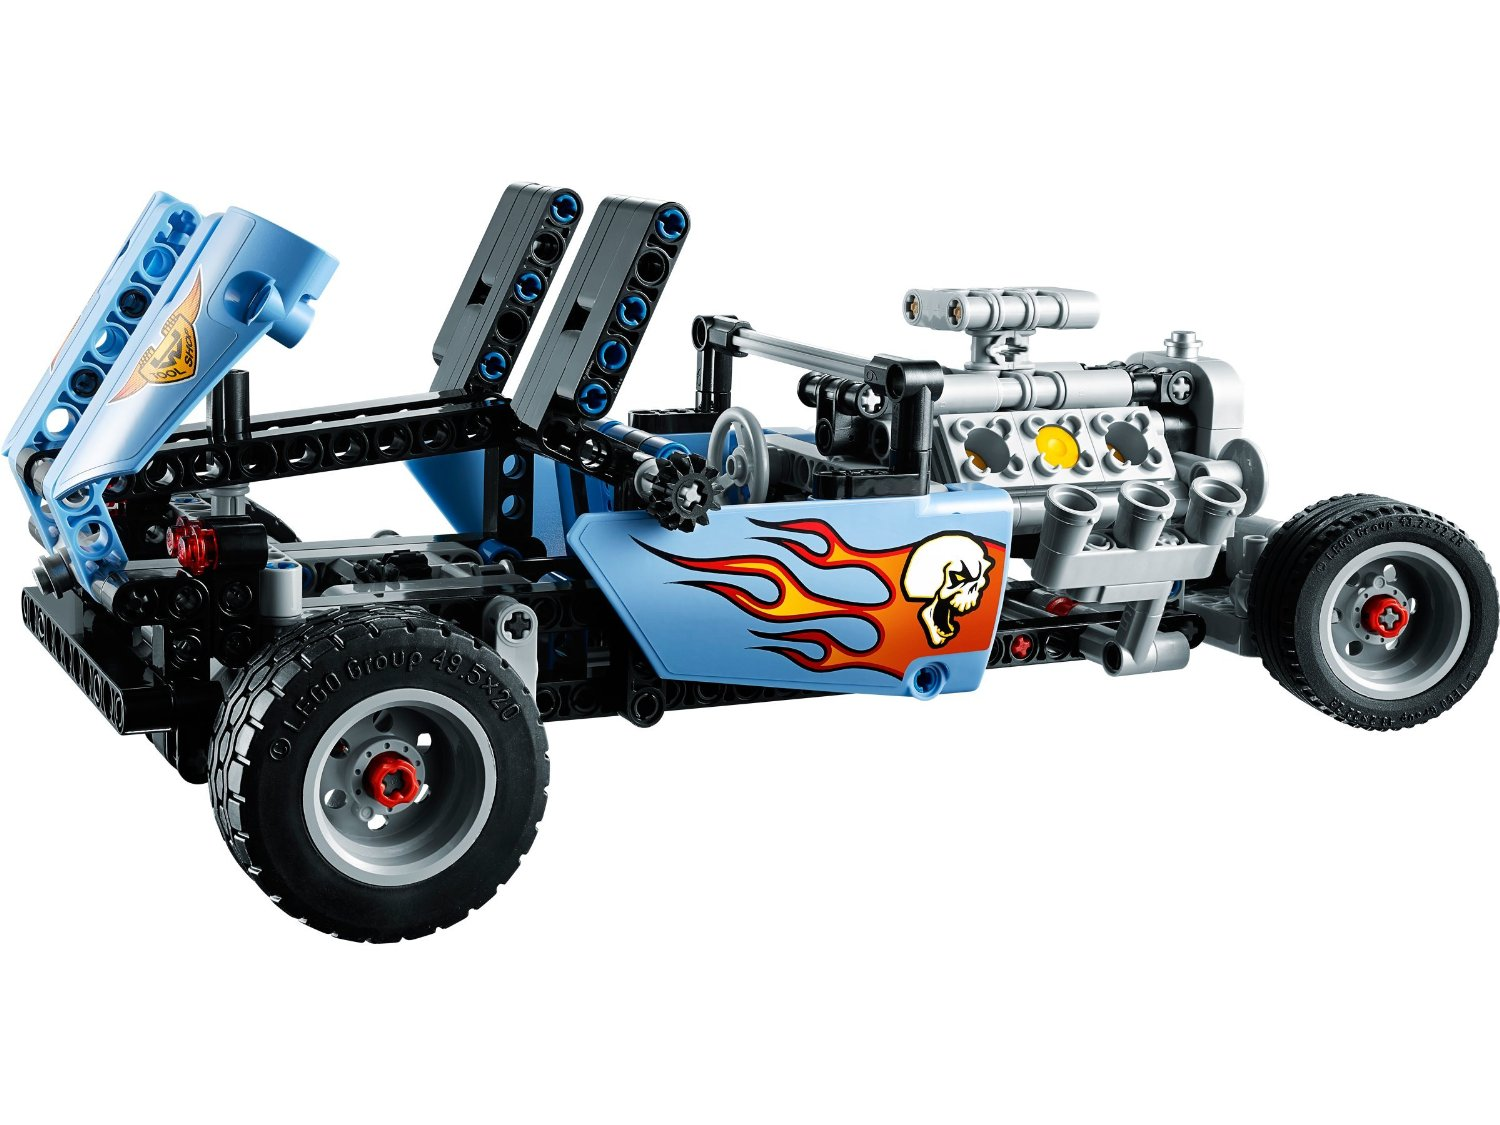 42022 Technic Hot Rod Review The Lego Car Blog